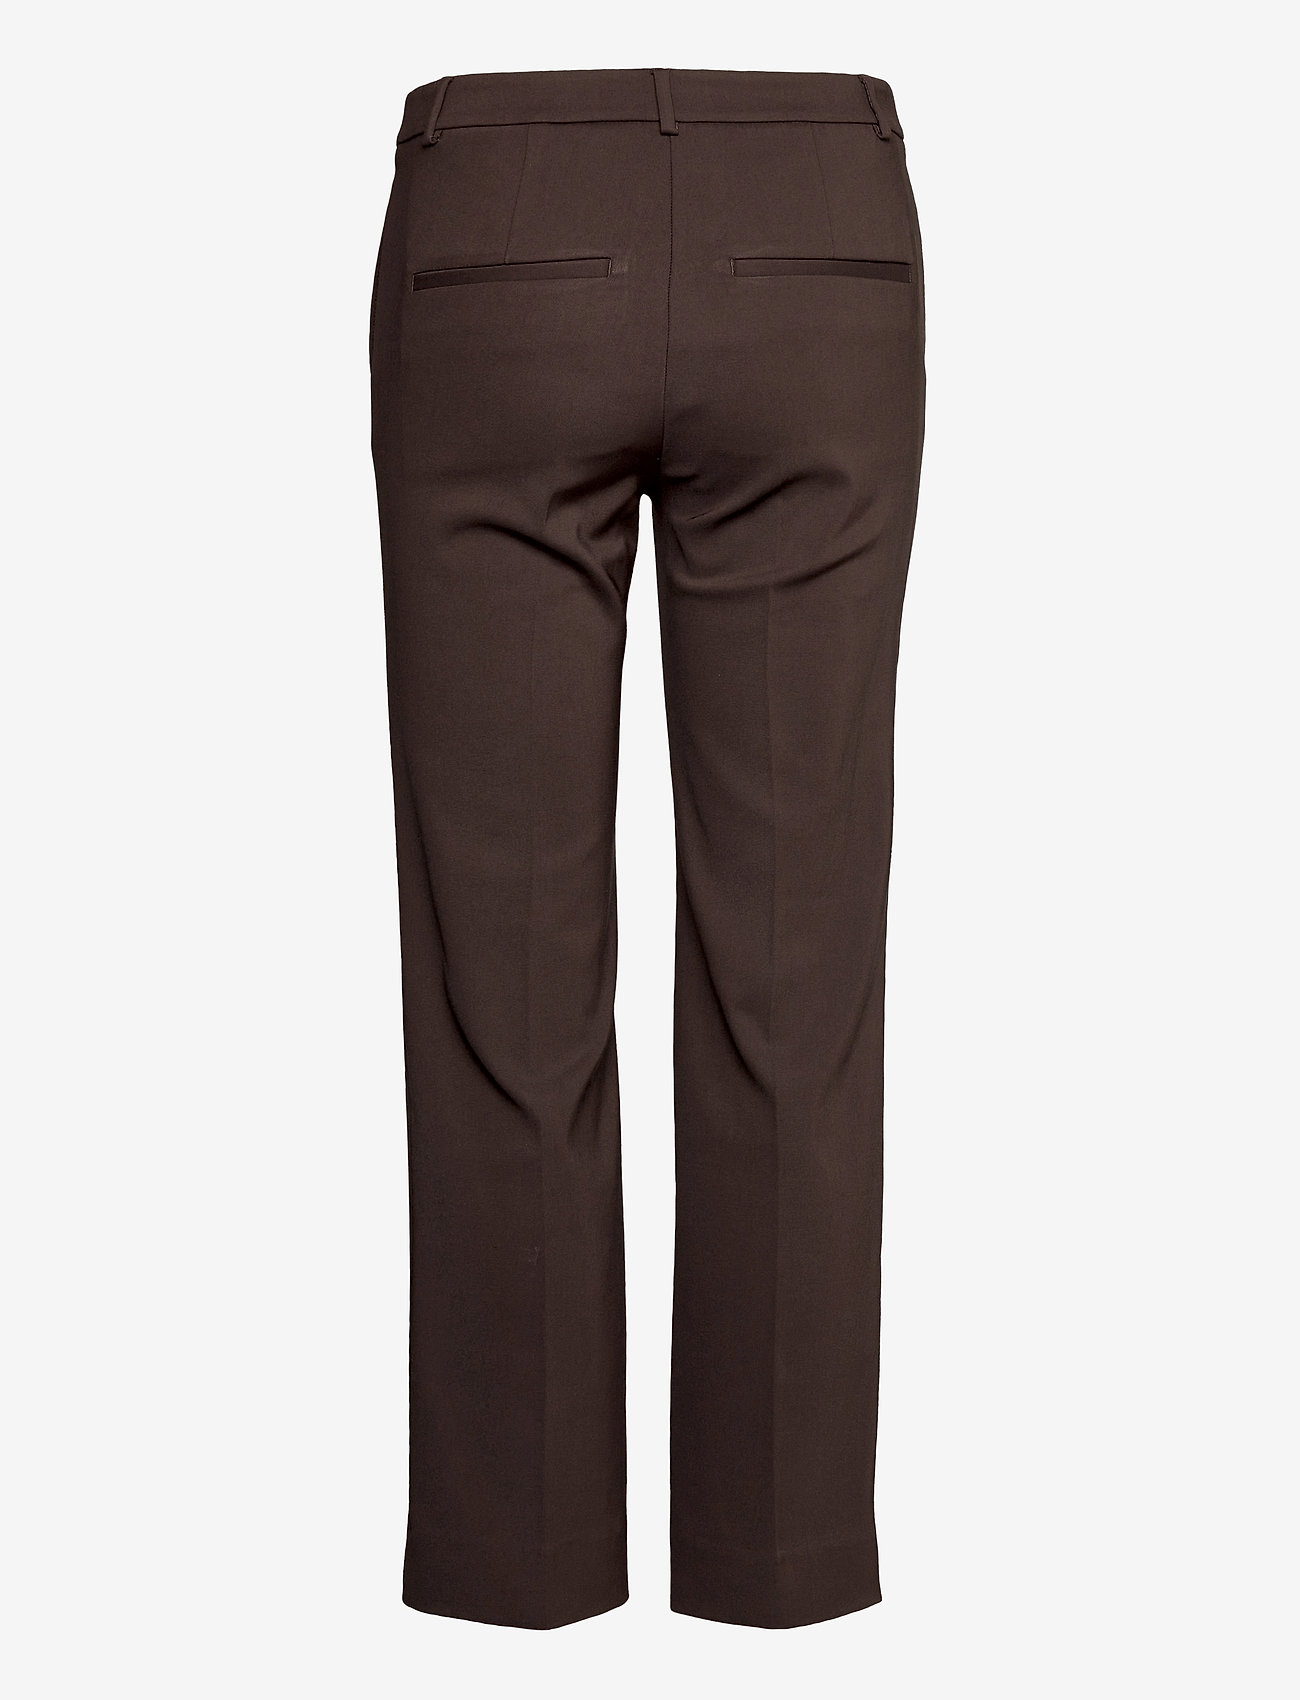 Tiger of Sweden - NOORA 3 - straight leg trousers - dusty brown - 1